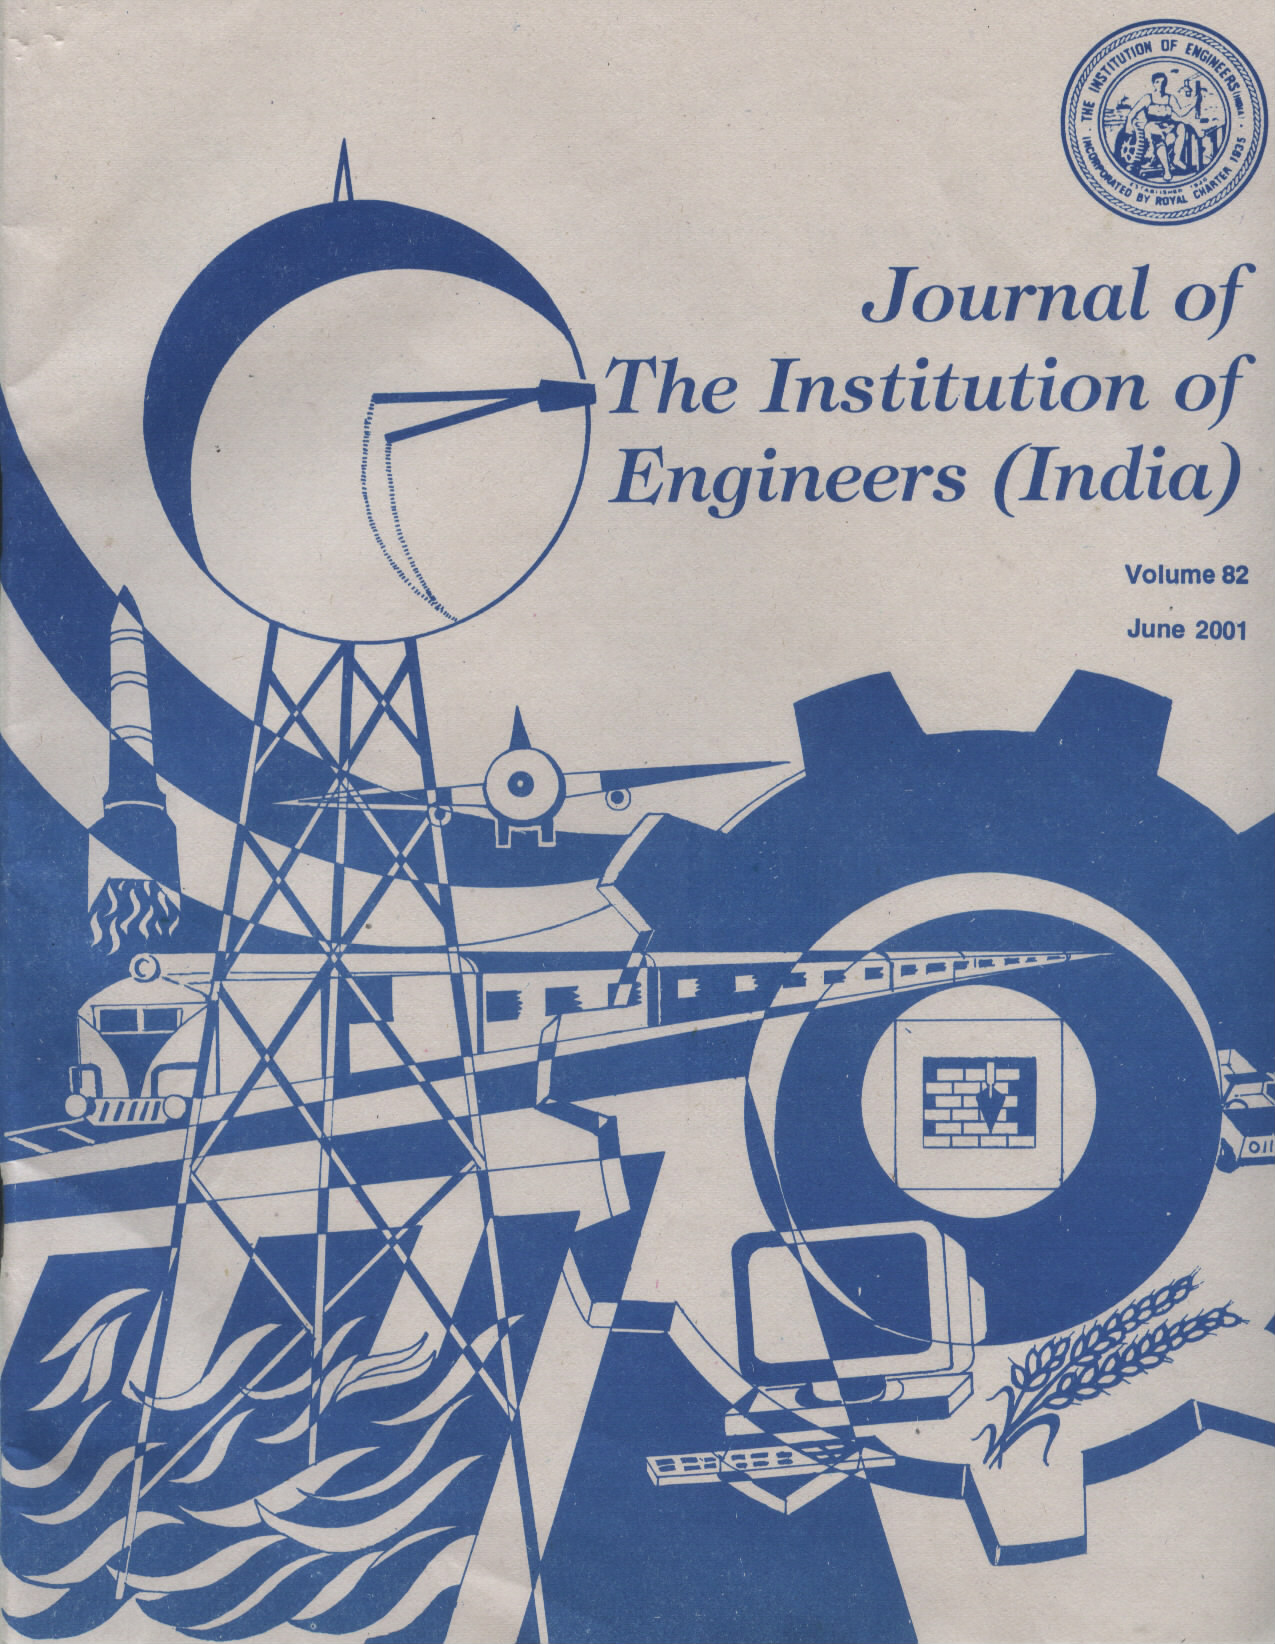 ksrinivasa raju and d nagesh kumar journal of institution of engineers india civil engineering division vol 82 no cv 1 june 2001 pp